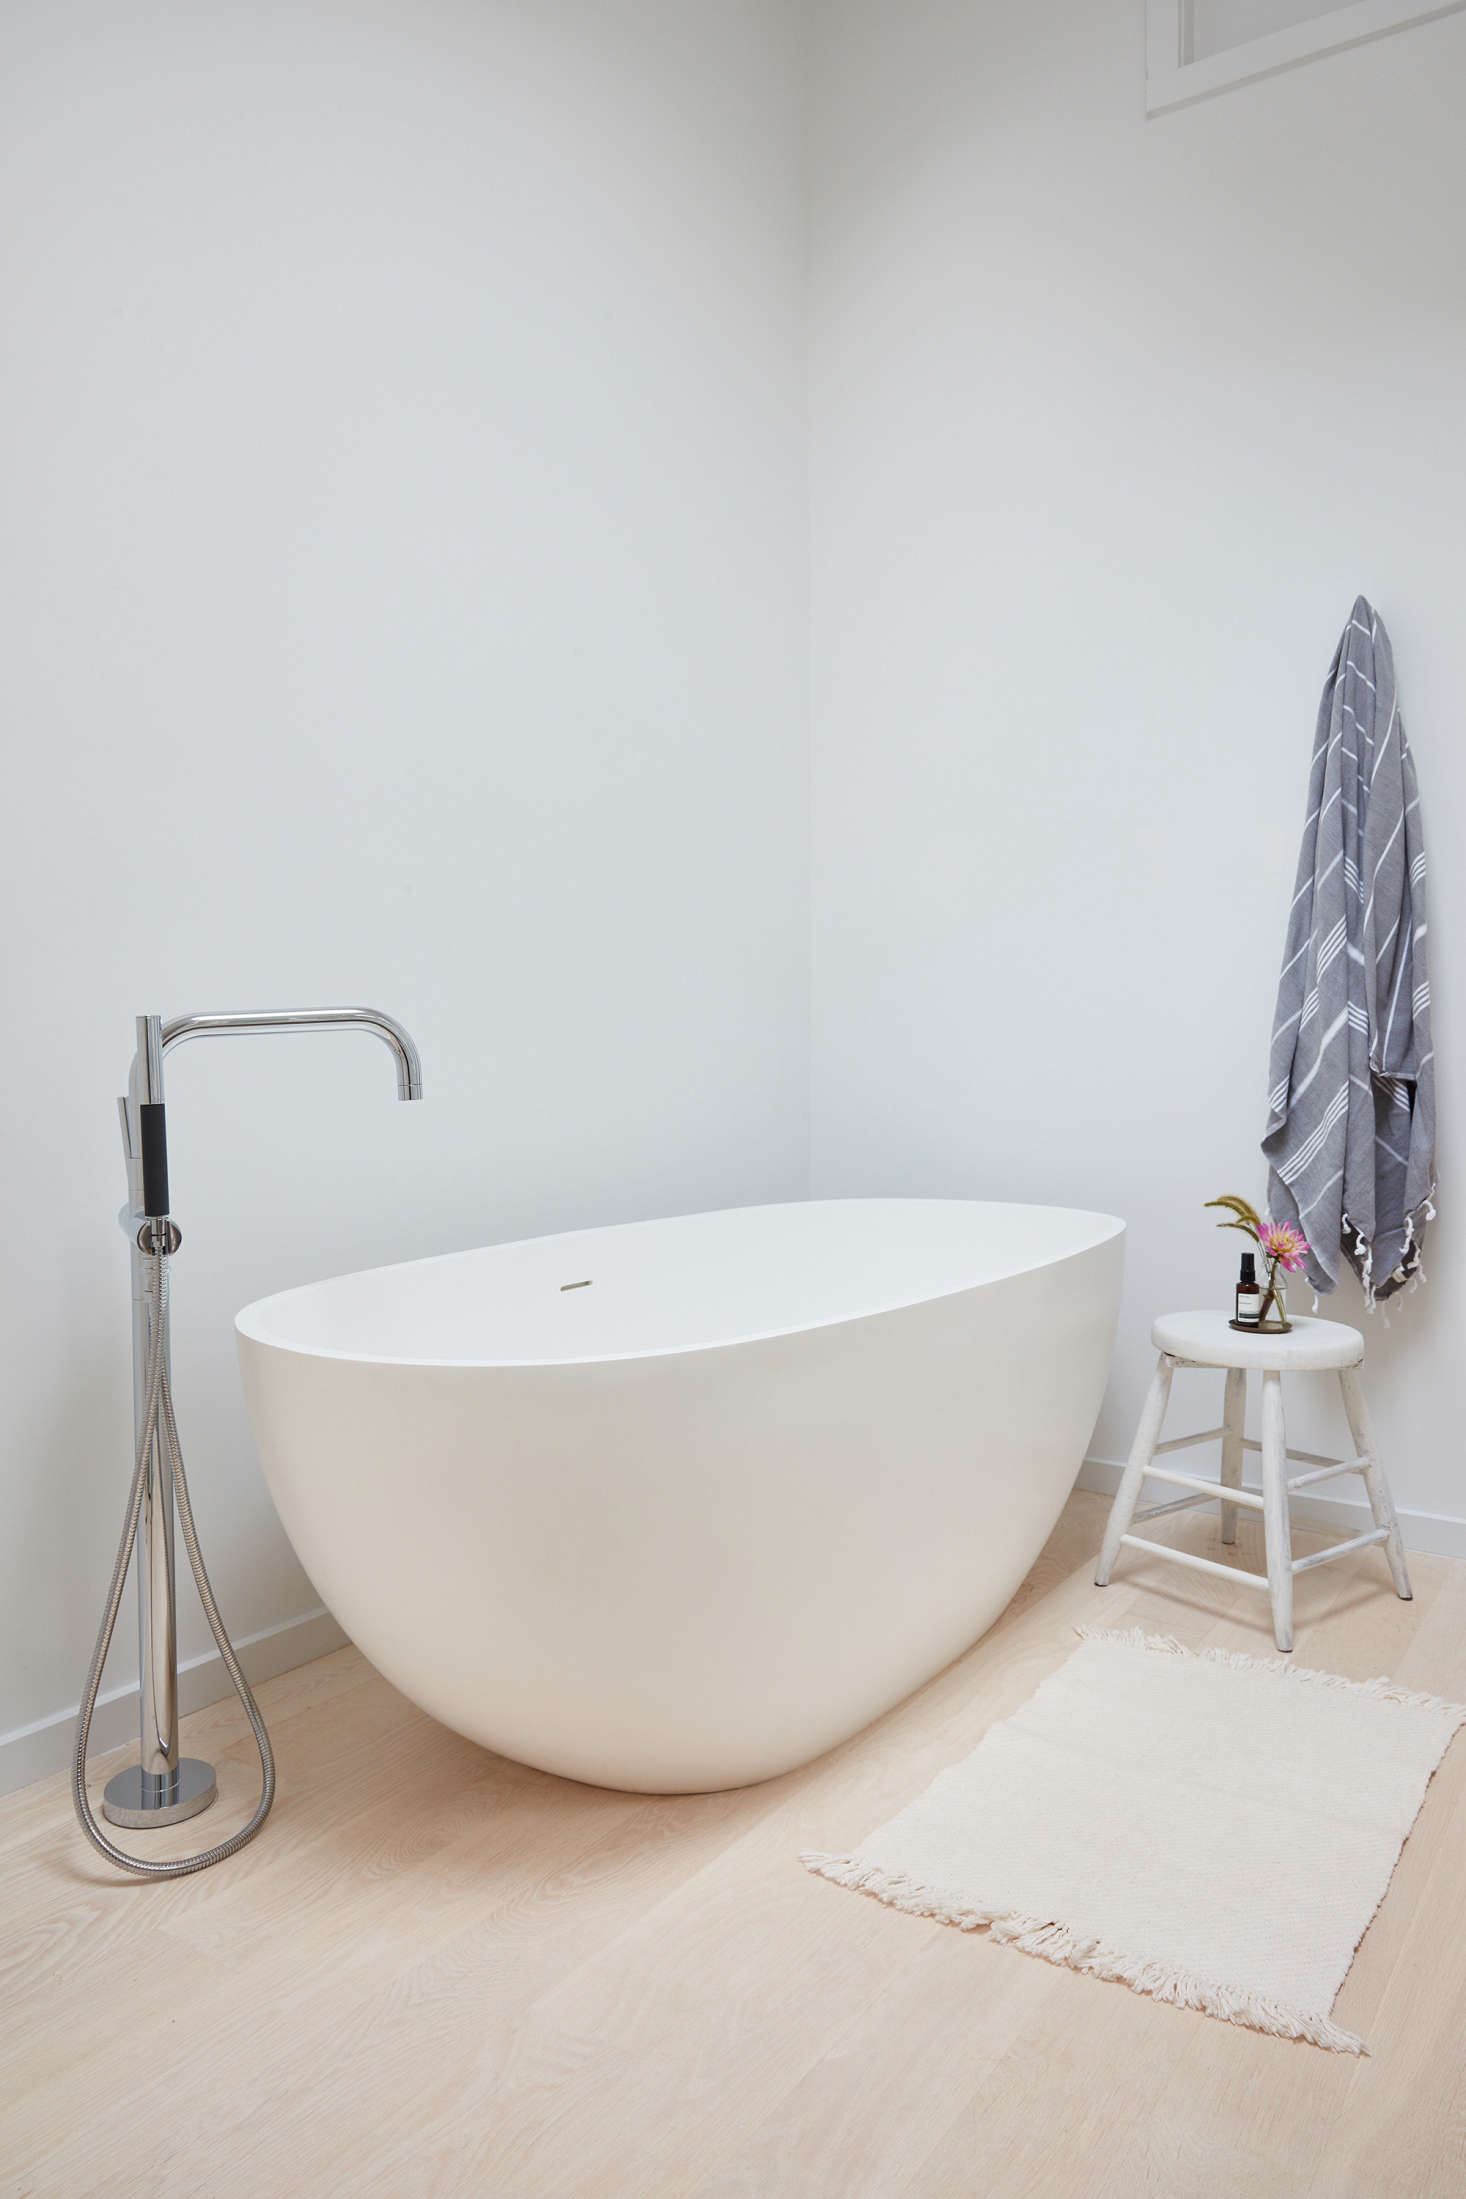 Also in the master bathroom, the ideal rejuvenation spot: a freestanding soaking tub from Signature Hardware is paired with a faucet from Kohler&#8